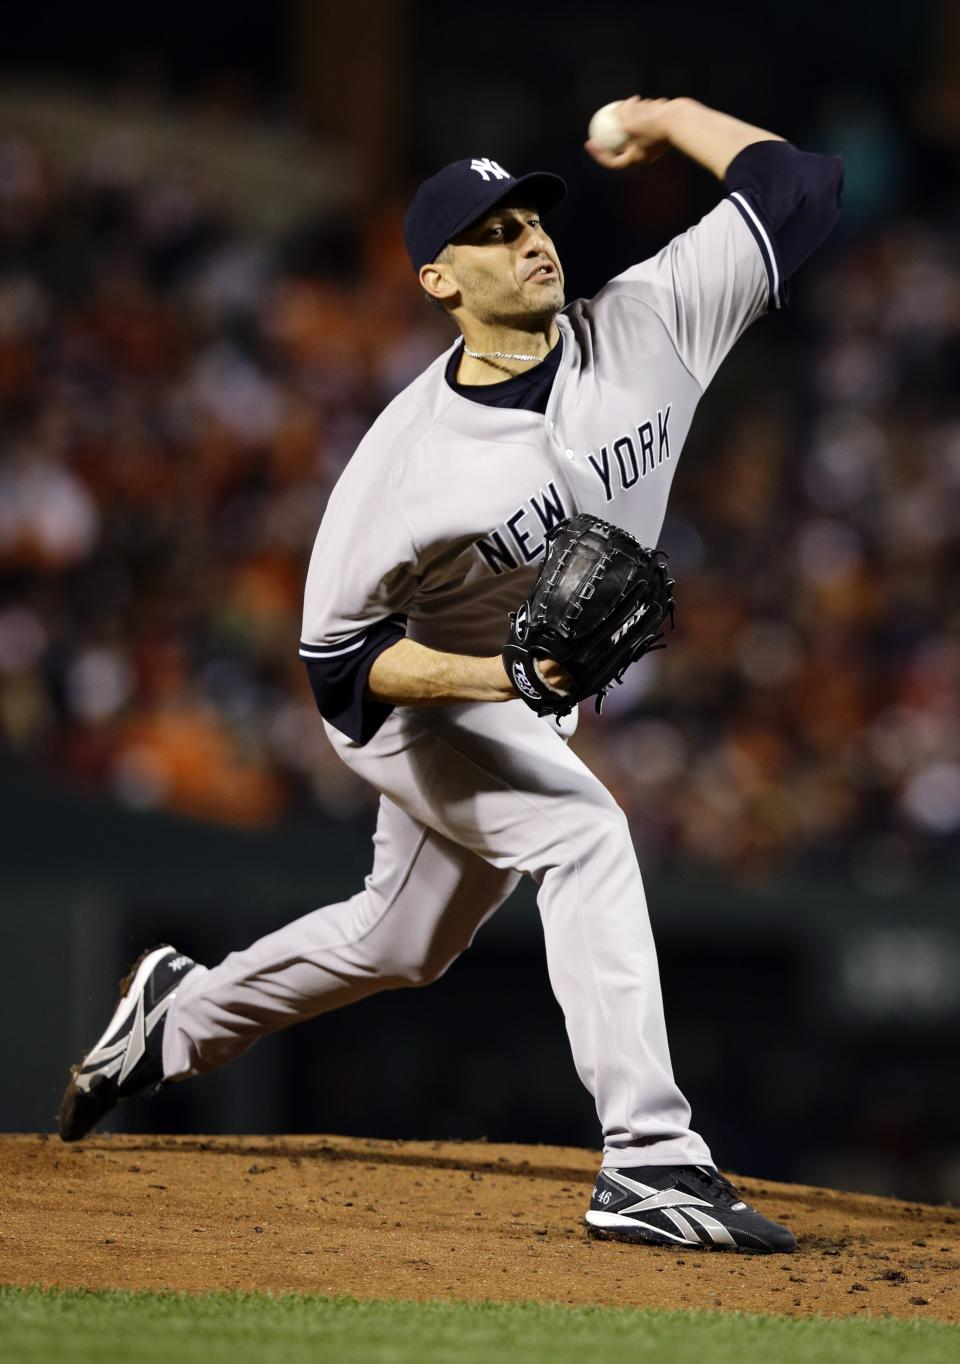 New York Yankees starting pitcher Andy Pettitte throws to the Baltimore Orioles in the first inning of Game 2 of the American League division baseball series on Monday, Oct. 8, 2012, in Baltimore. (AP Photo/Alex Brandon)